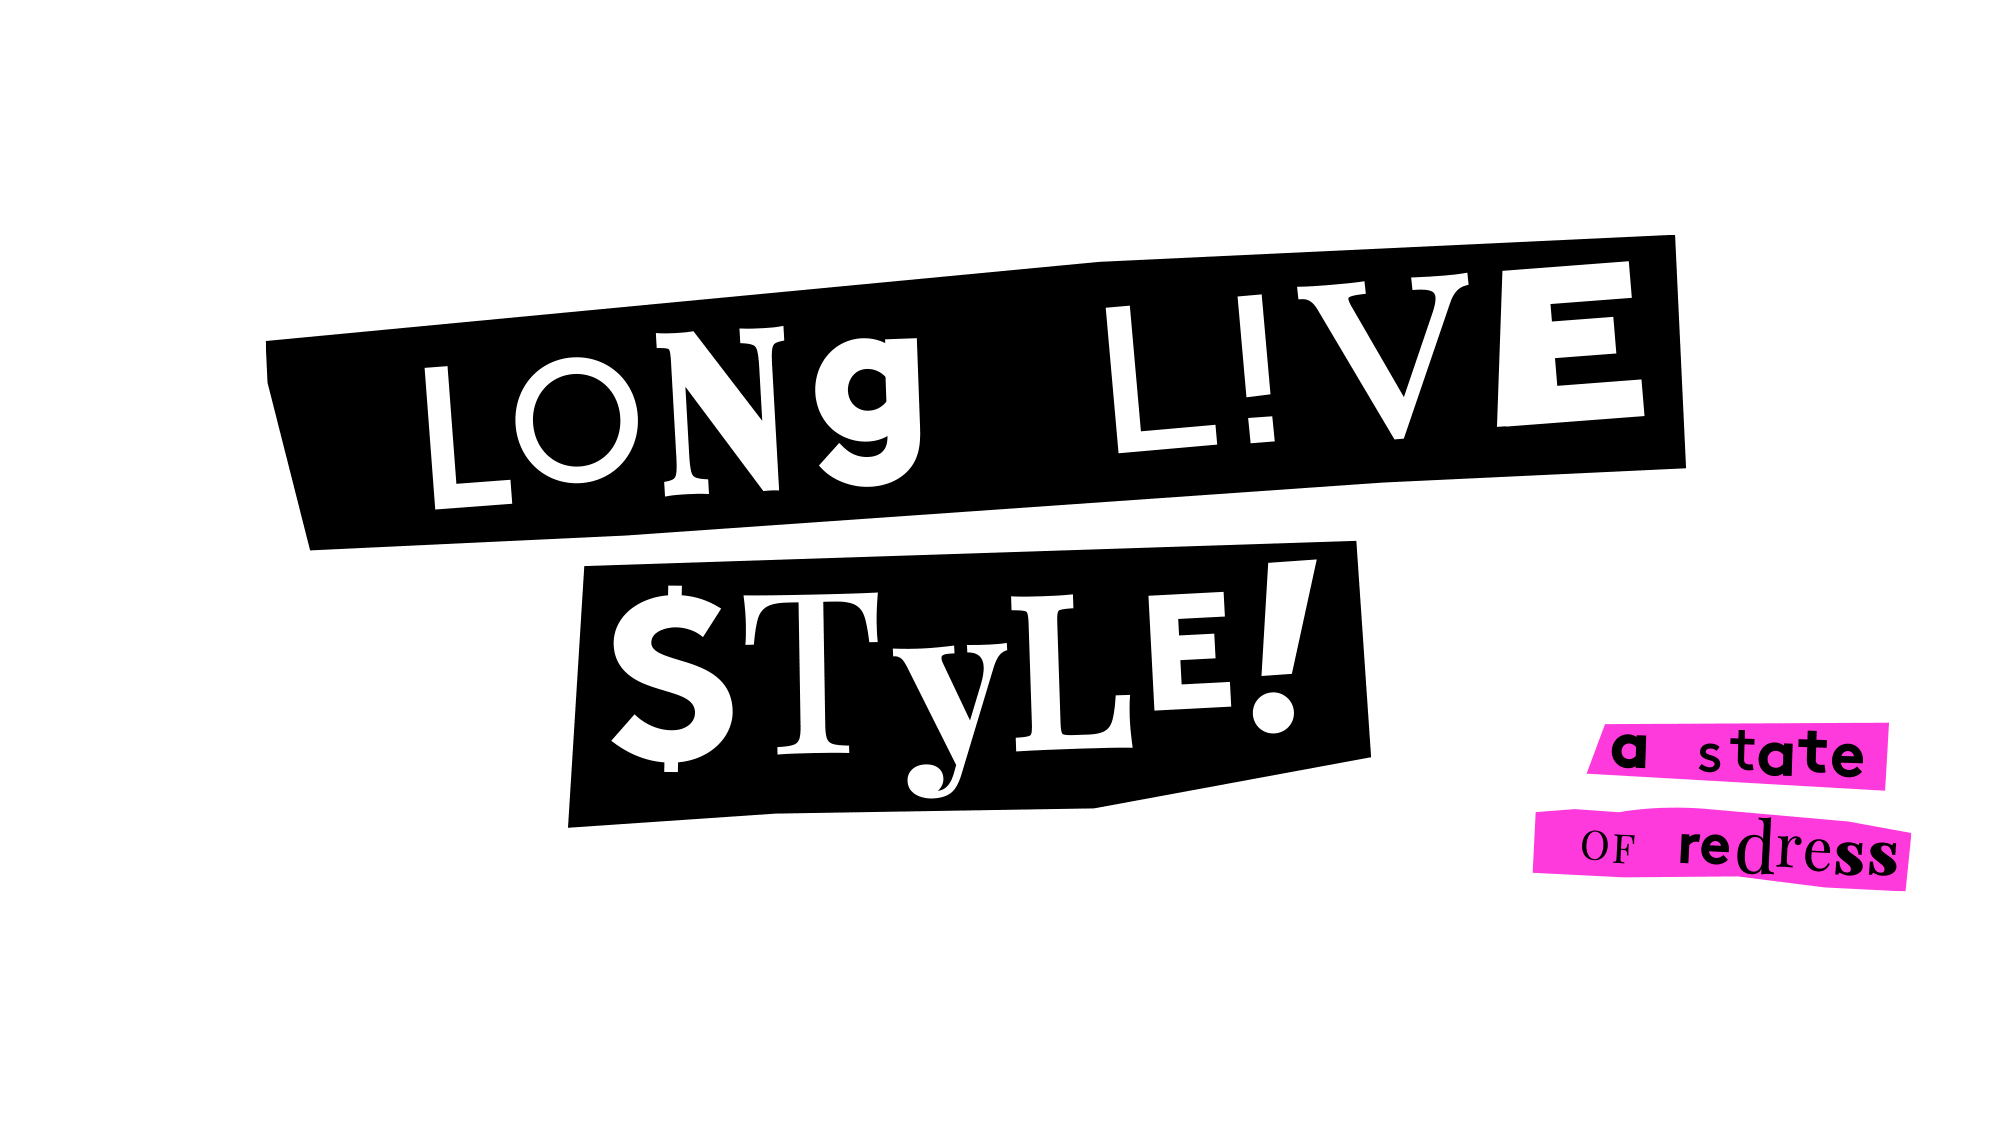 Long Live style. A state of redress.